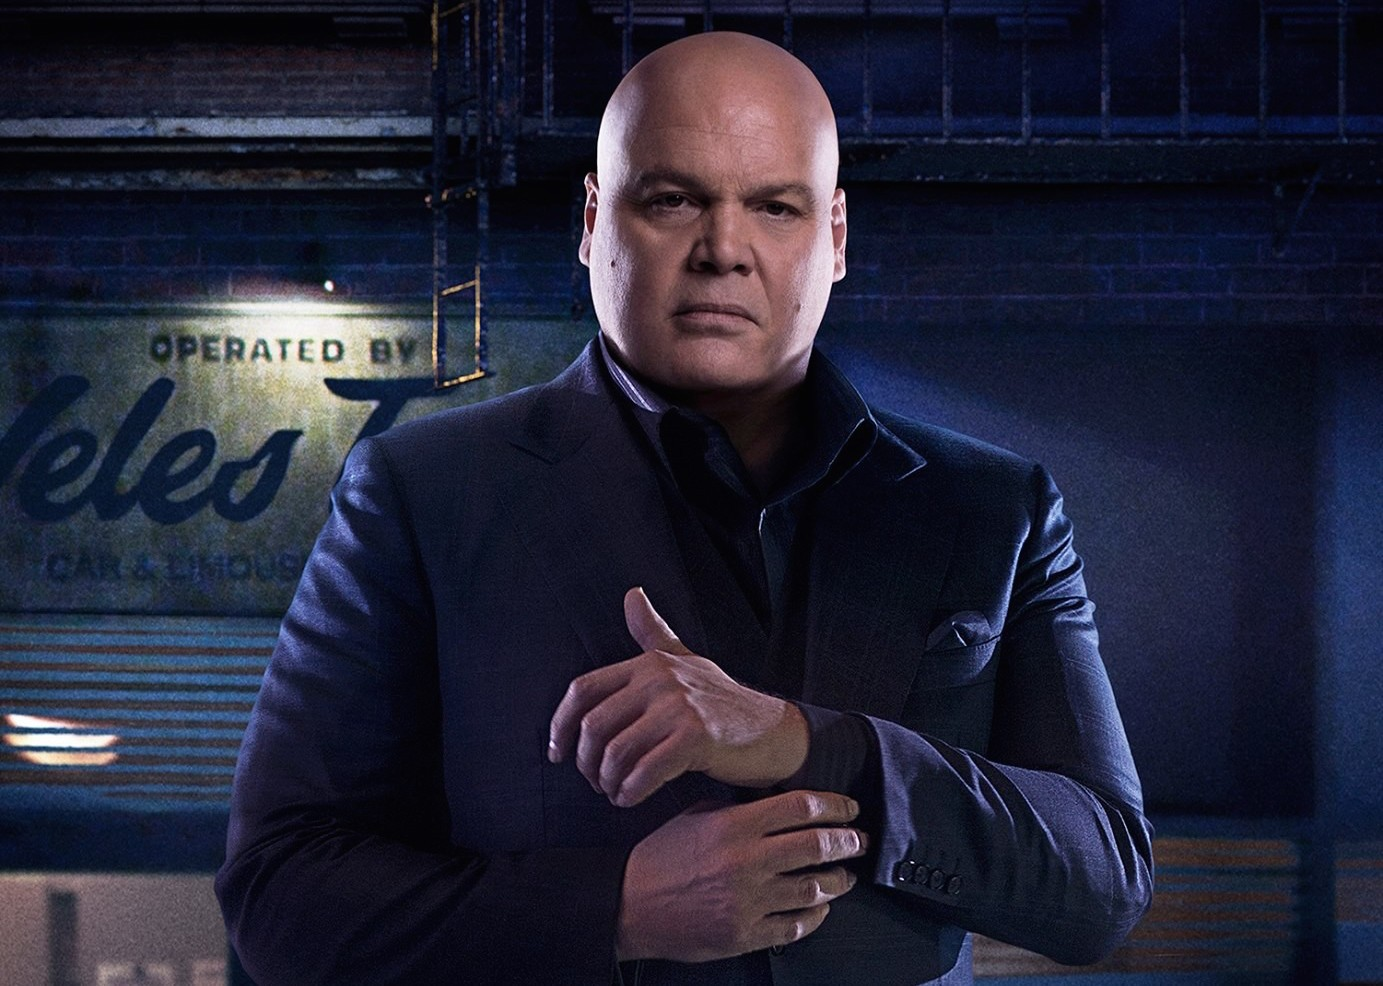 Daredevil star Vincent D'Onofrio lands new TV role after Marvel show axing